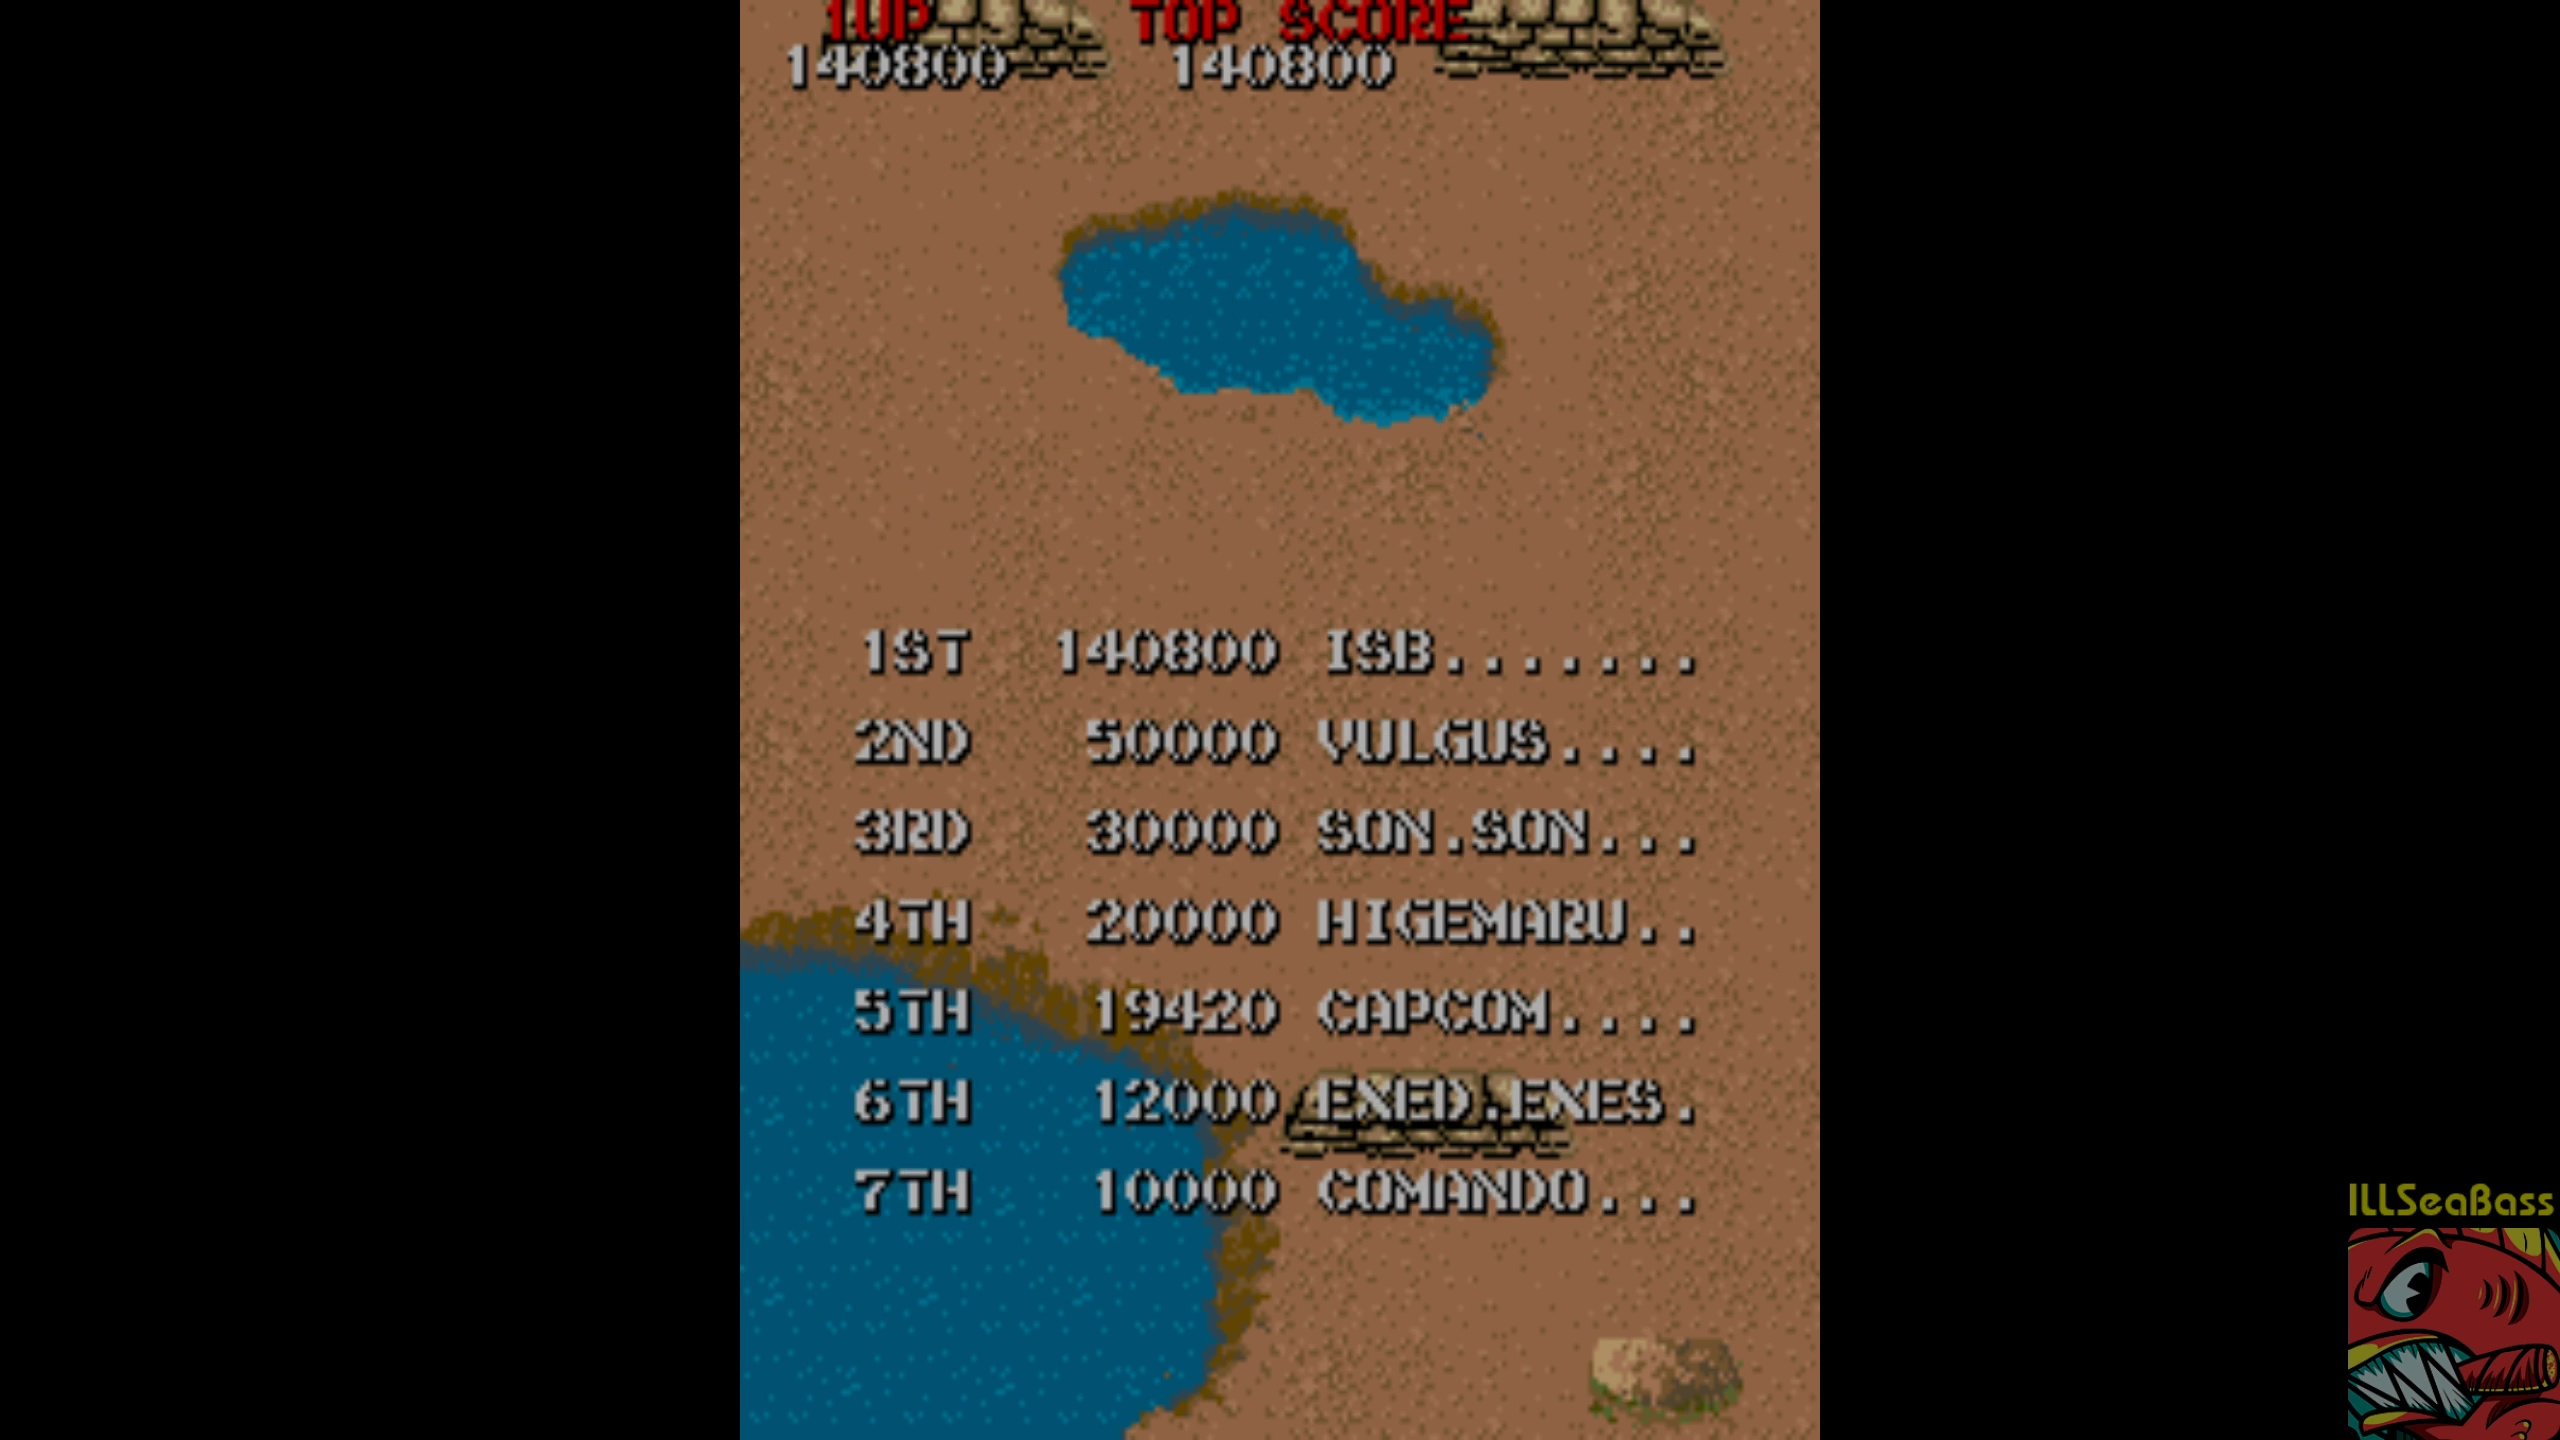 ILLSeaBass: Commando (Arcade Emulated / M.A.M.E.) 140,800 points on 2018-04-29 01:08:48